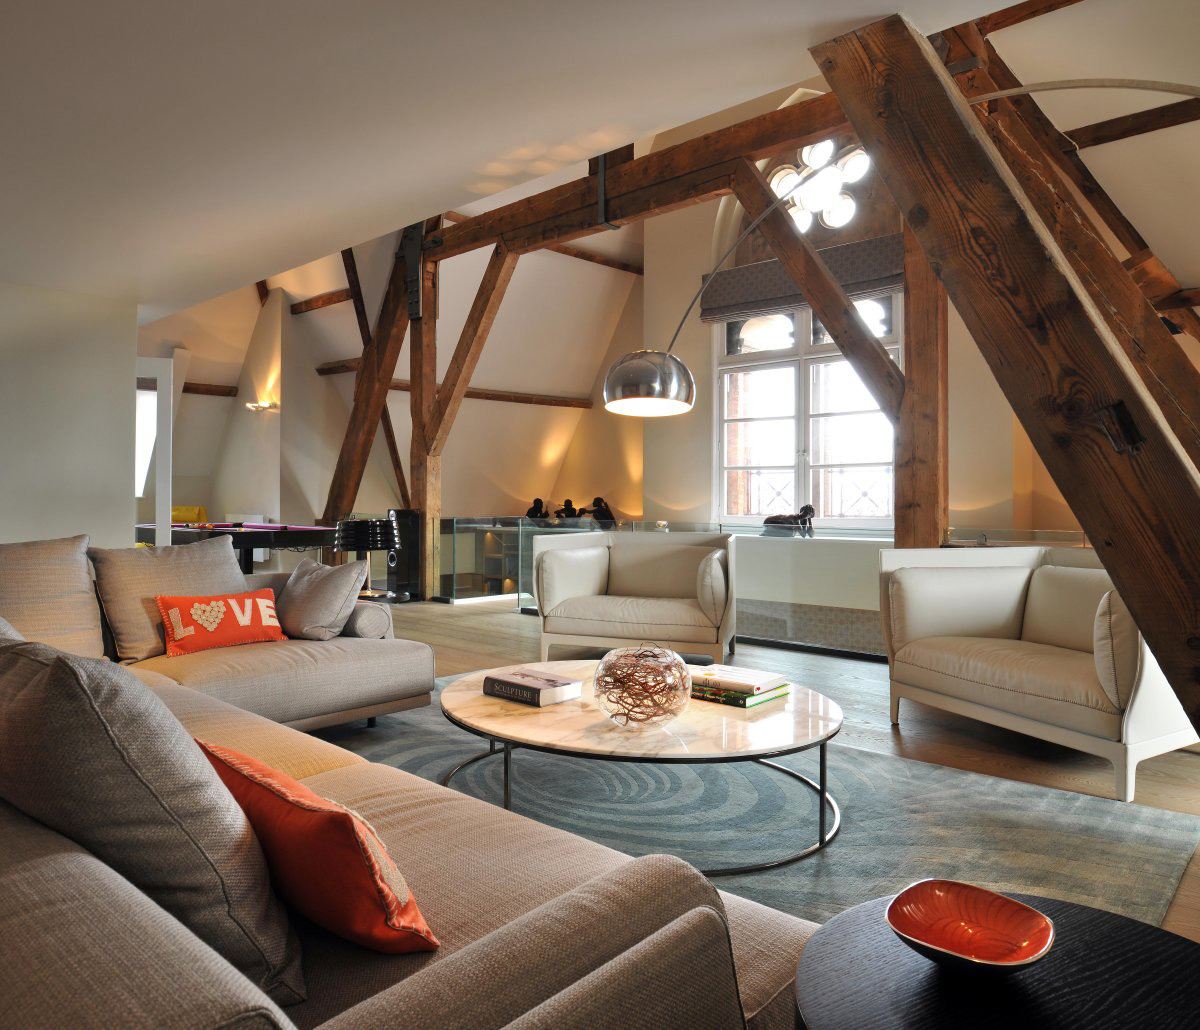 Sofas, Coffee Table, Lighting, St Pancras Penthouse Apartment in London